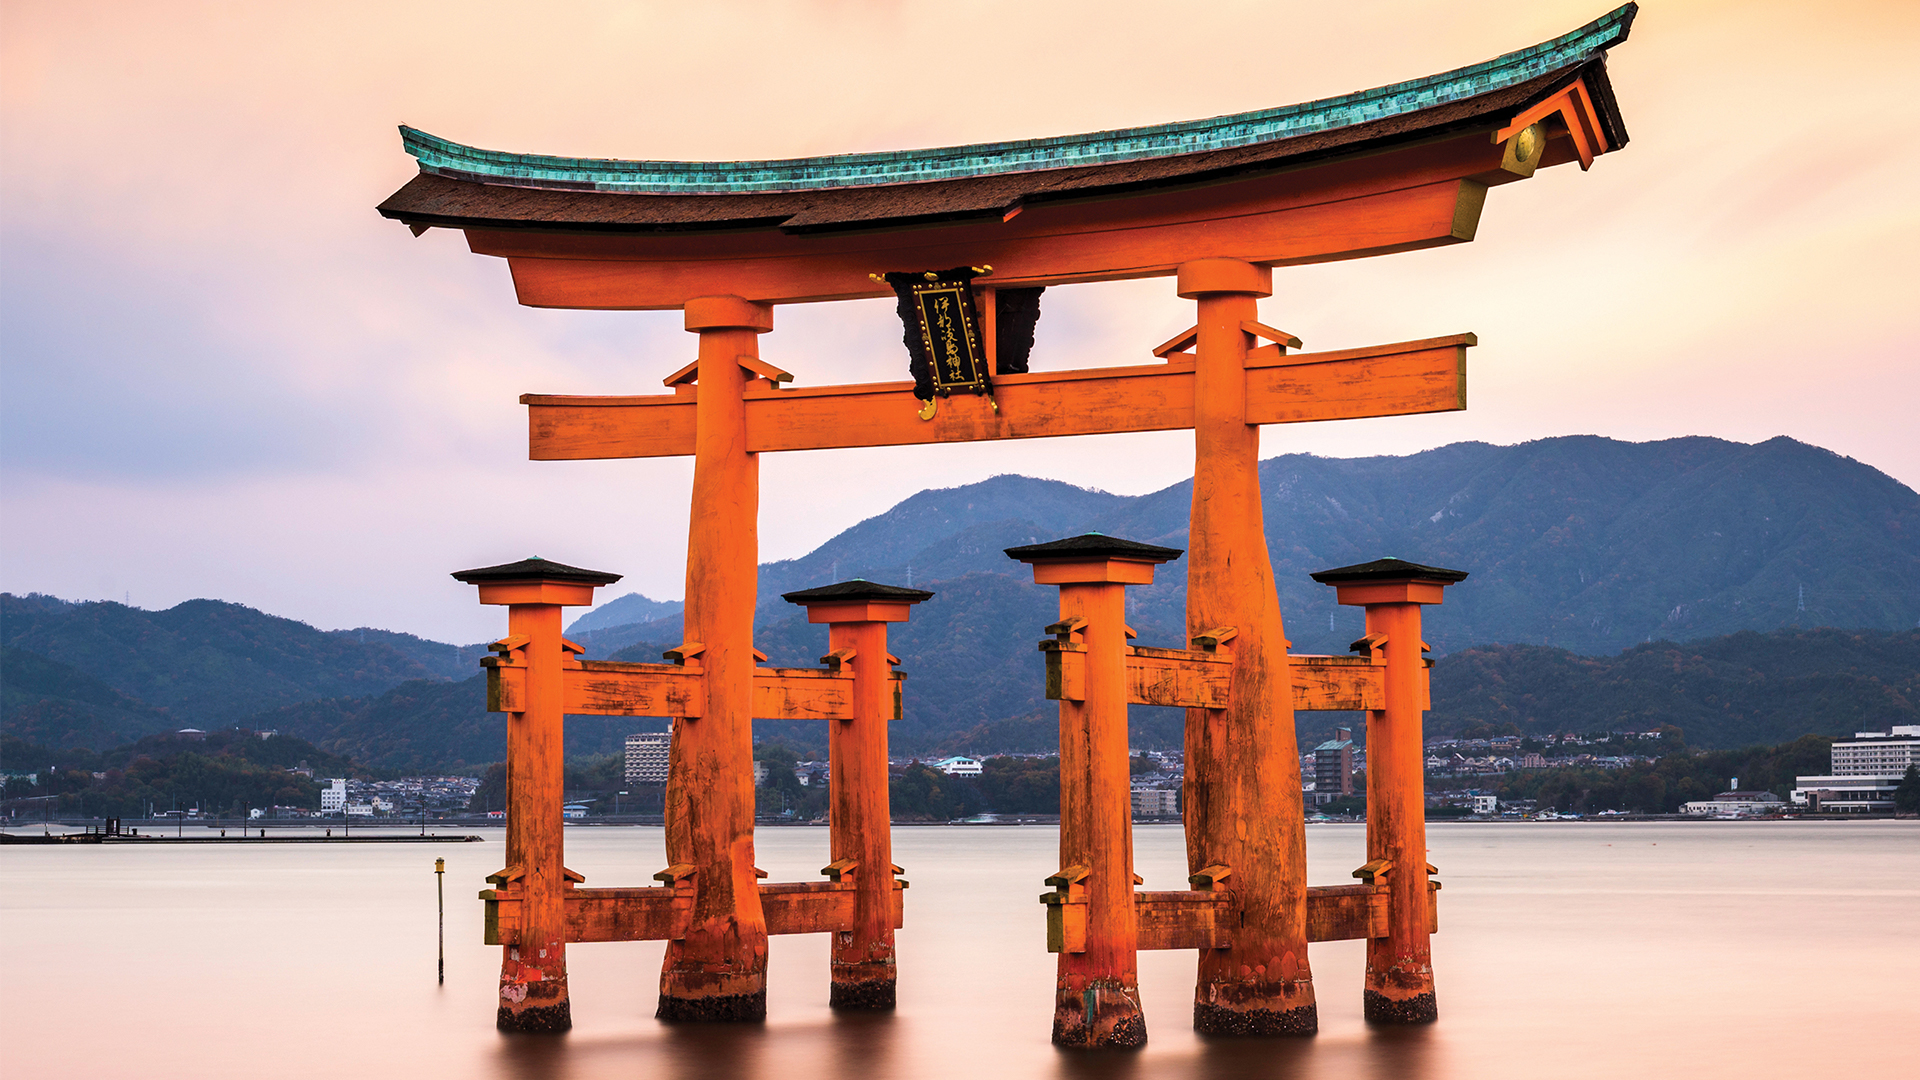 Floating gate of Itsukushima Shrine